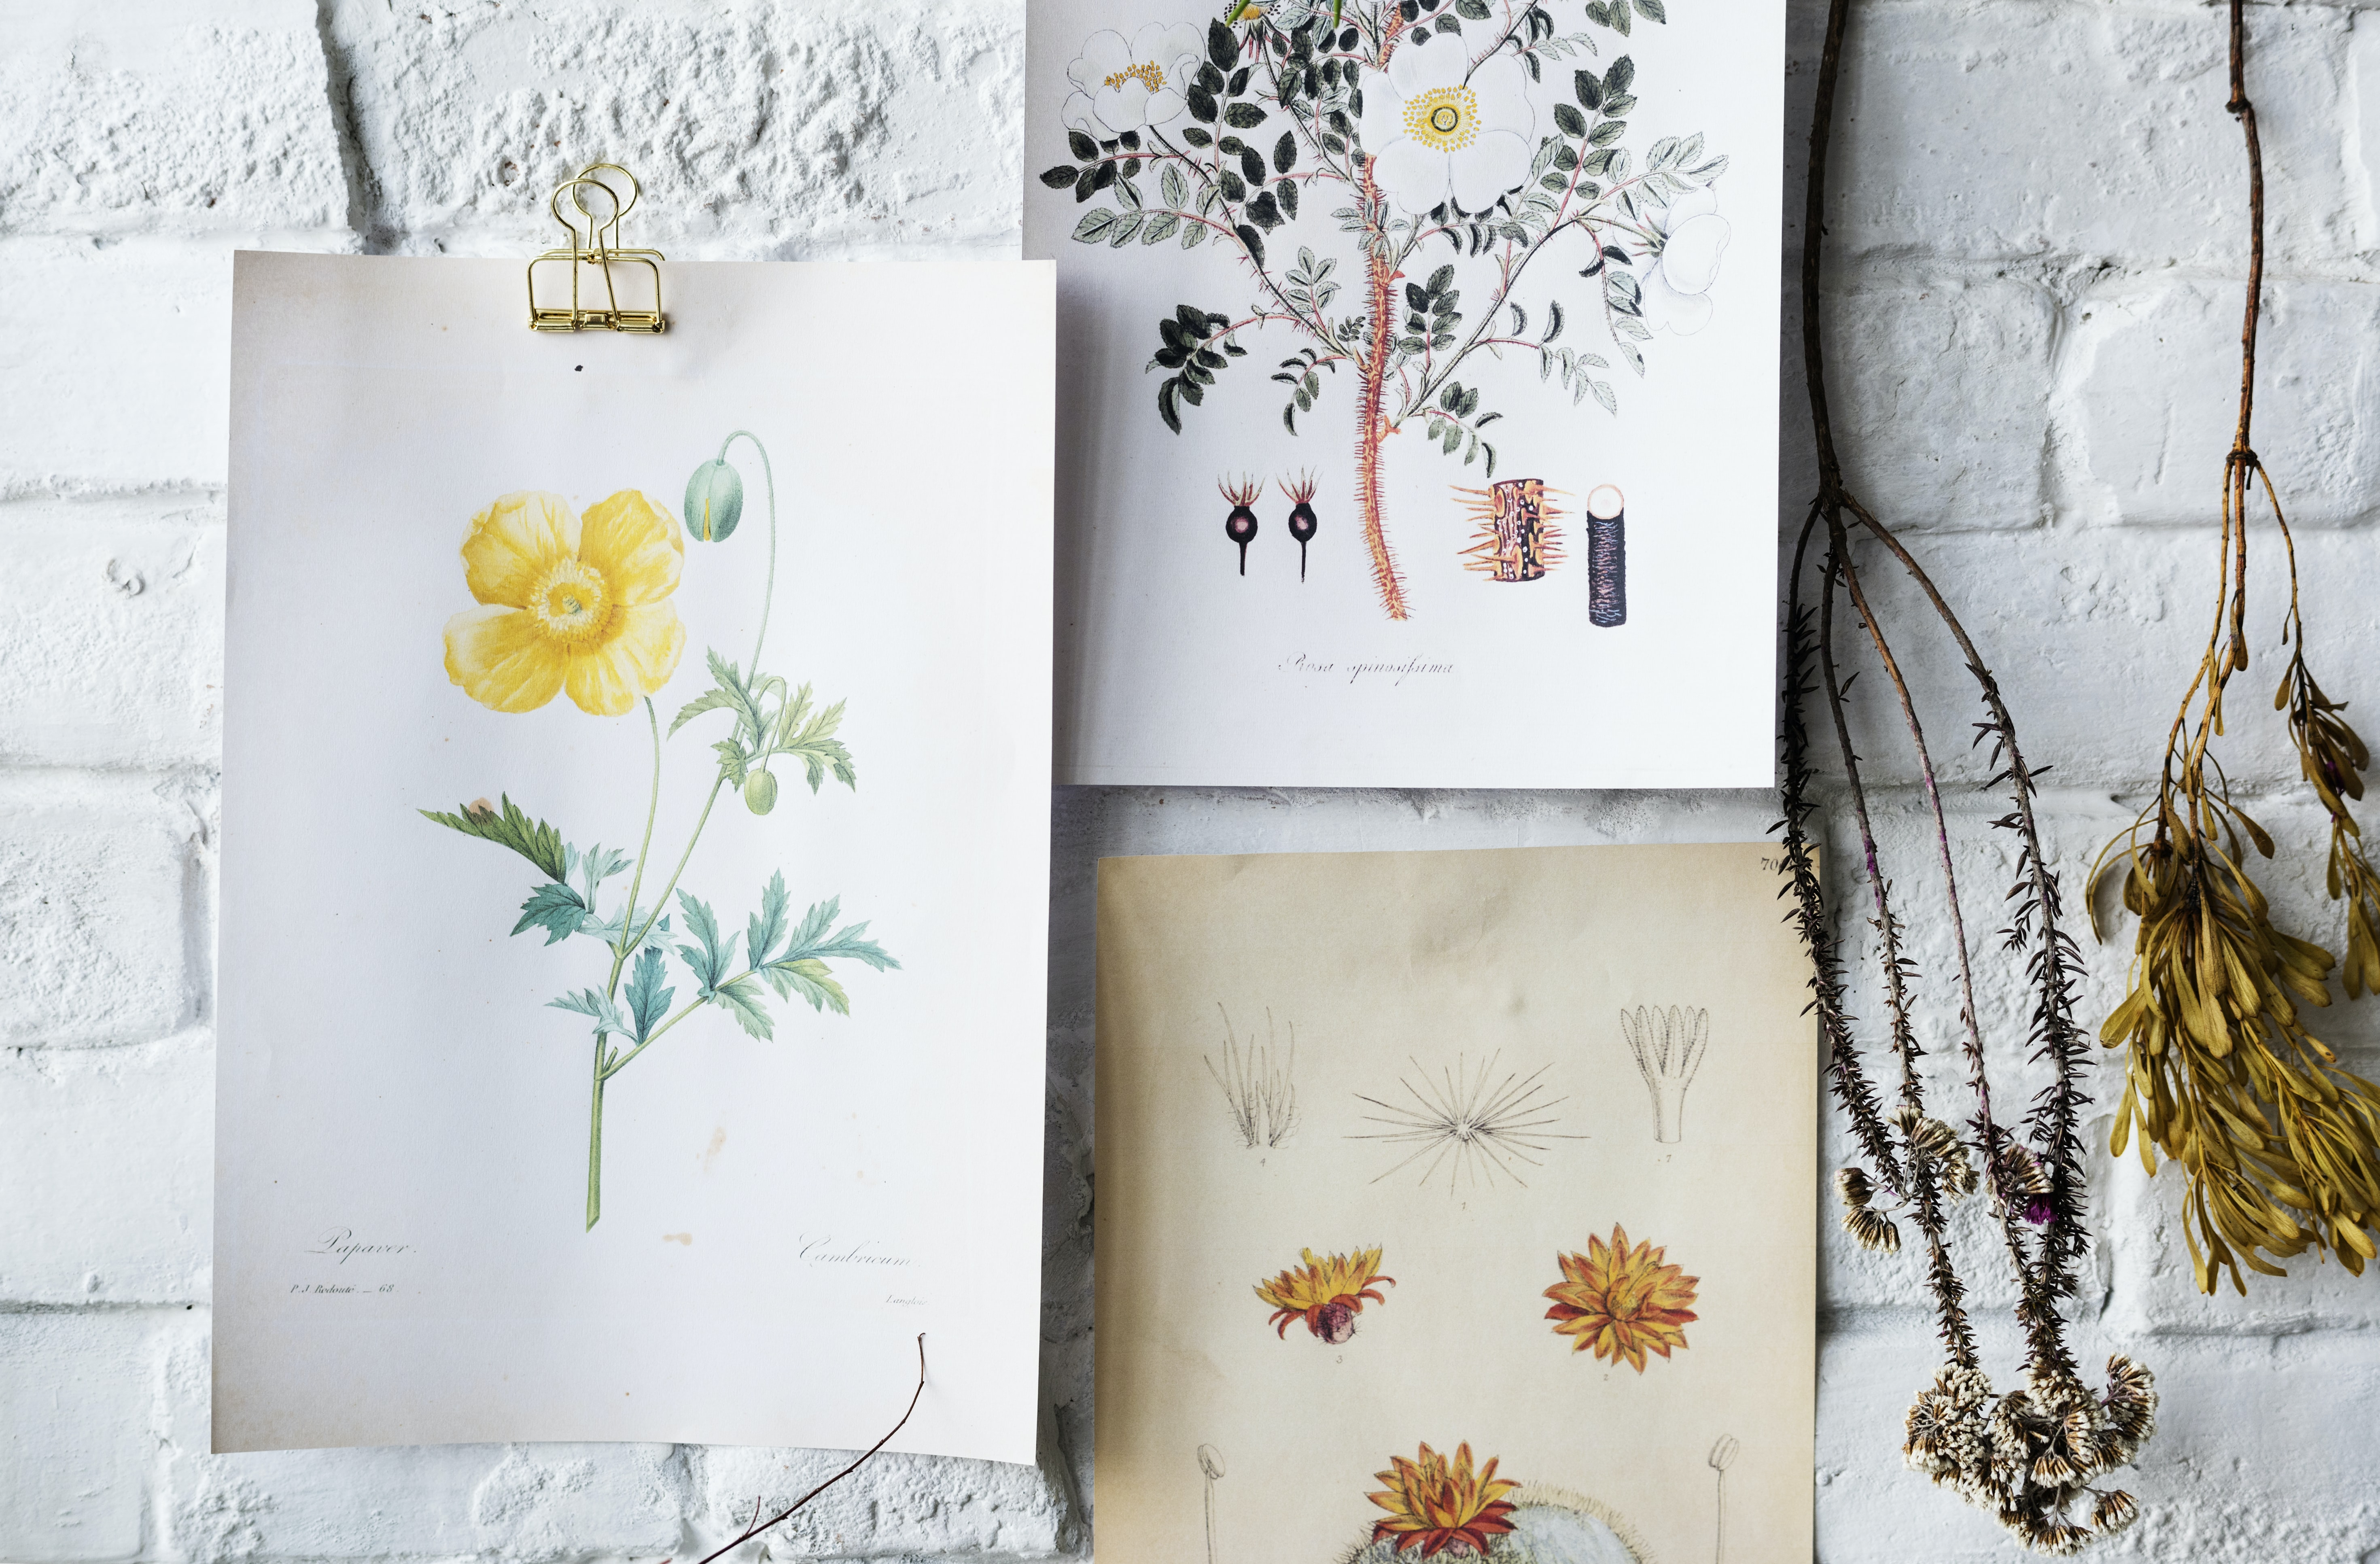 assorted flowers painting